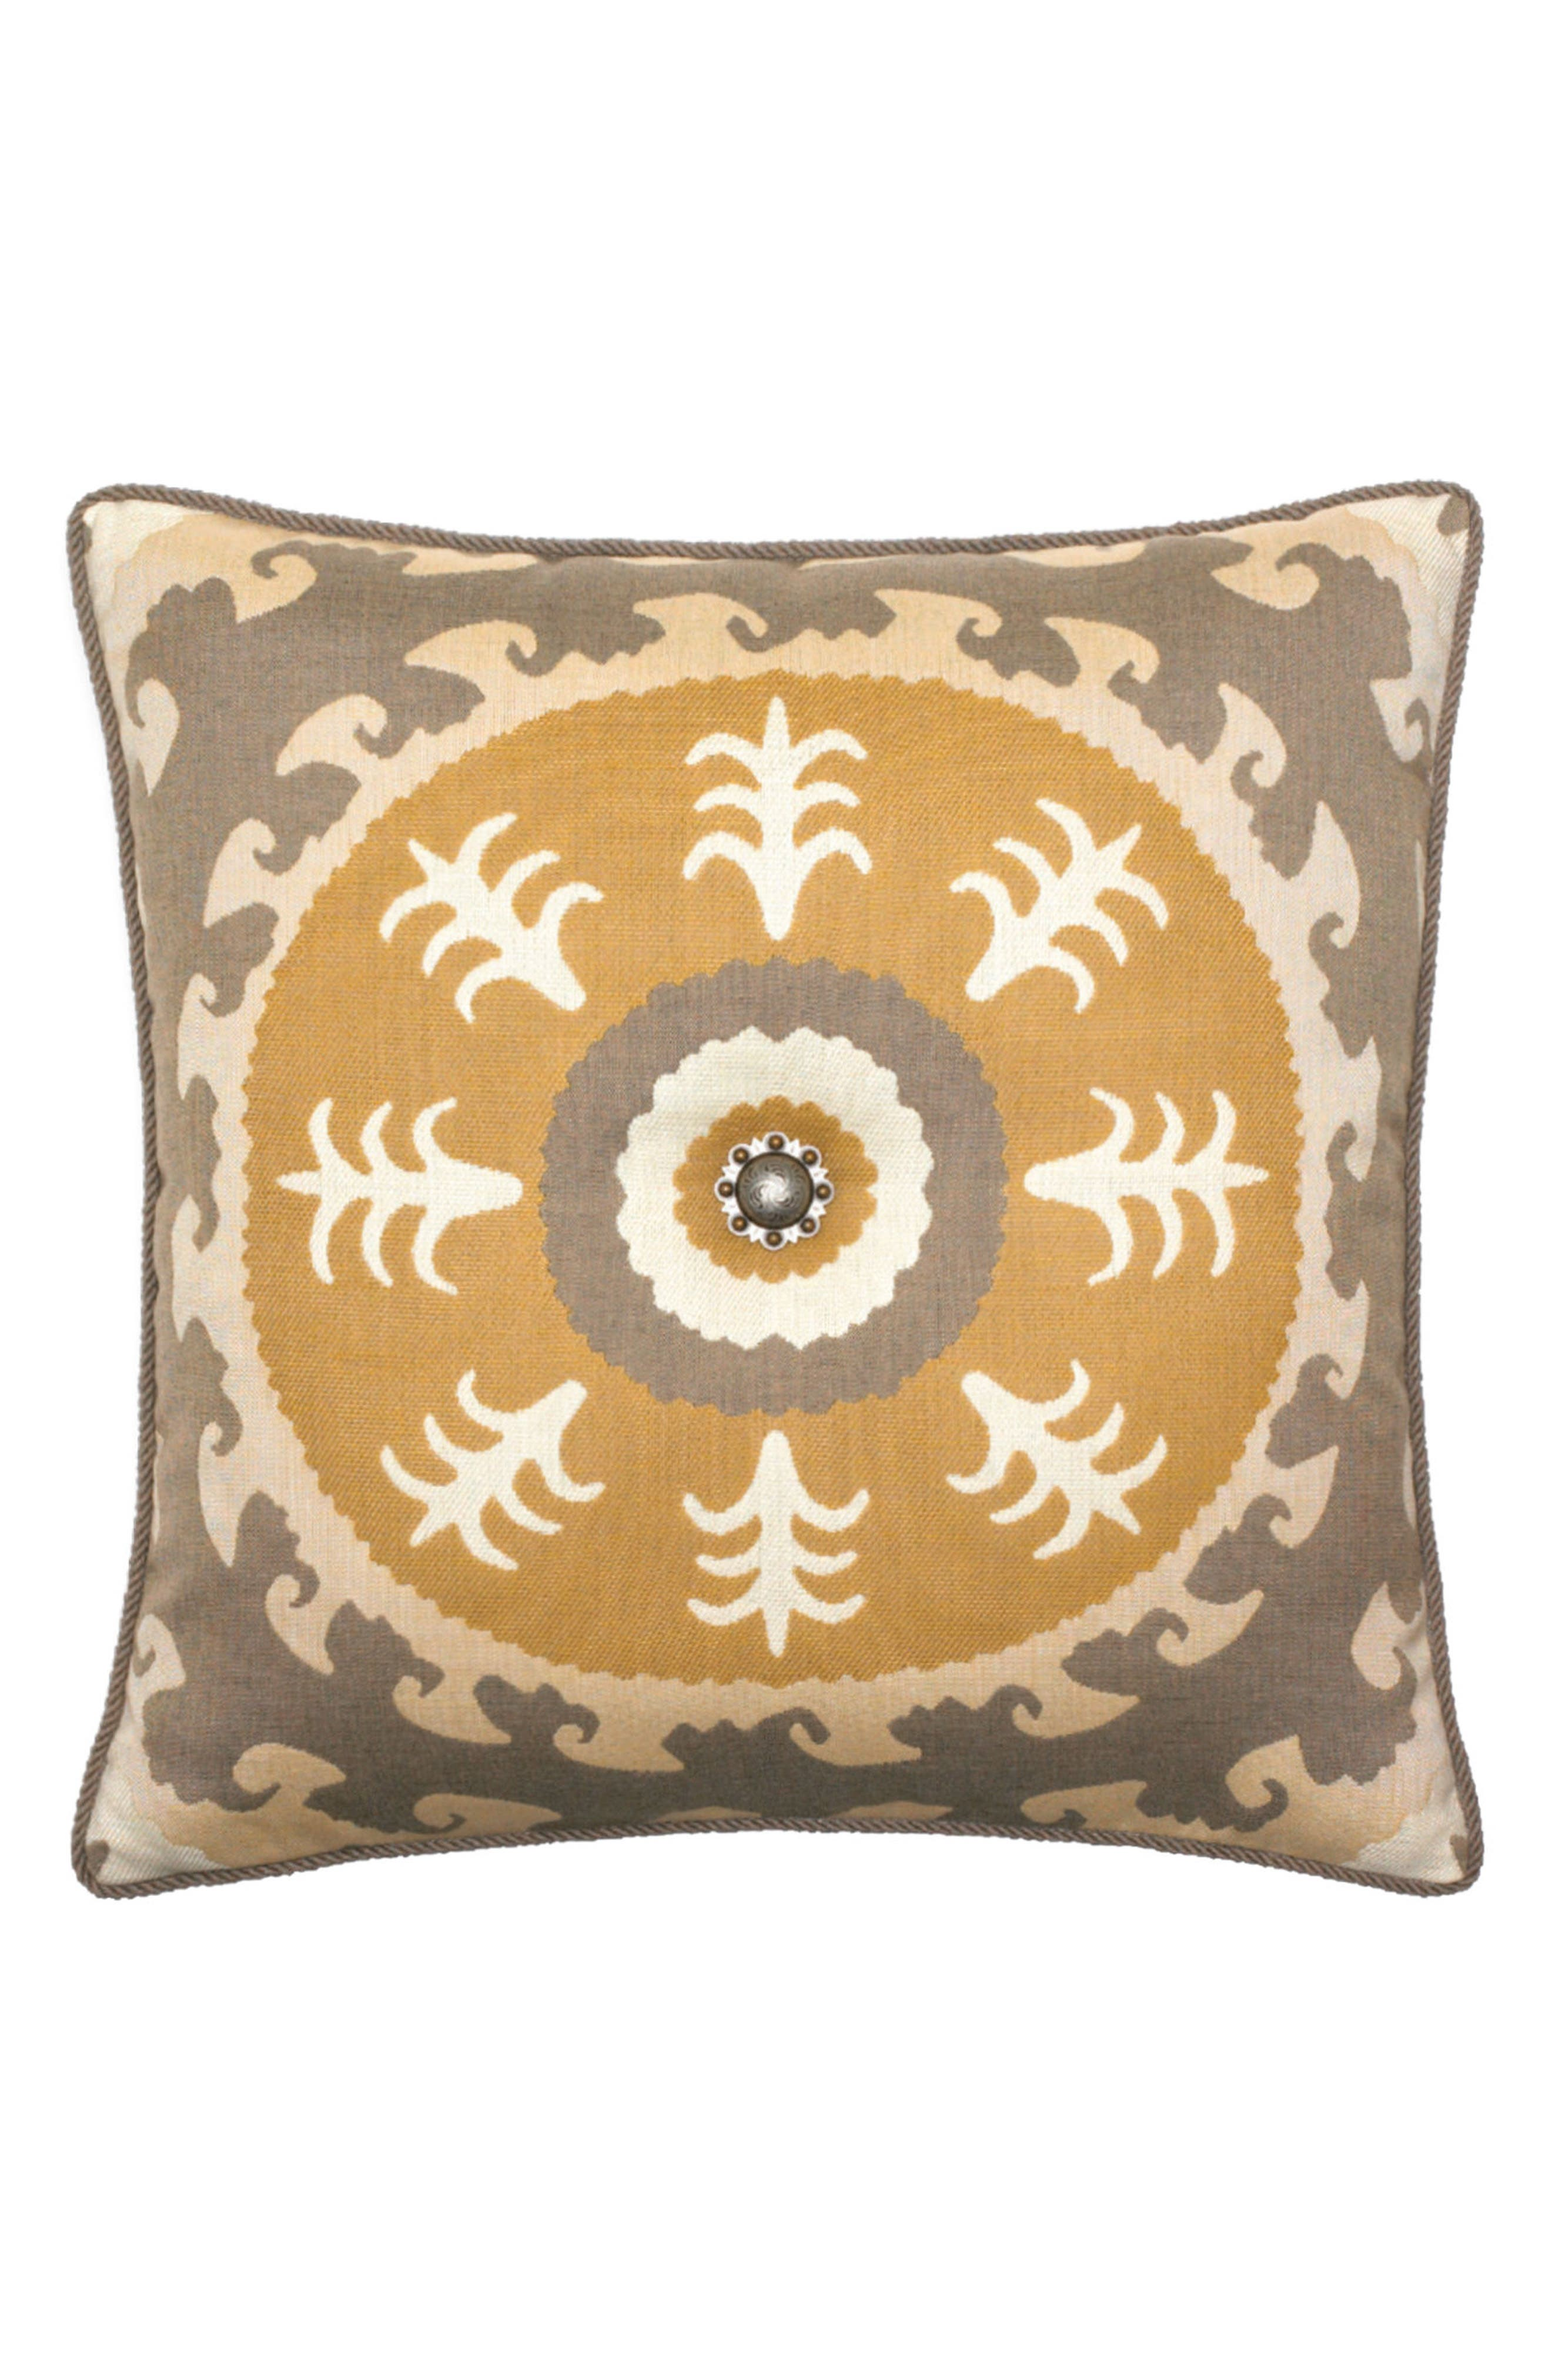 Jeweled Sedona Sun Indoor/Outdoor Accent Pillow,                         Main,                         color, Gold/ Grey